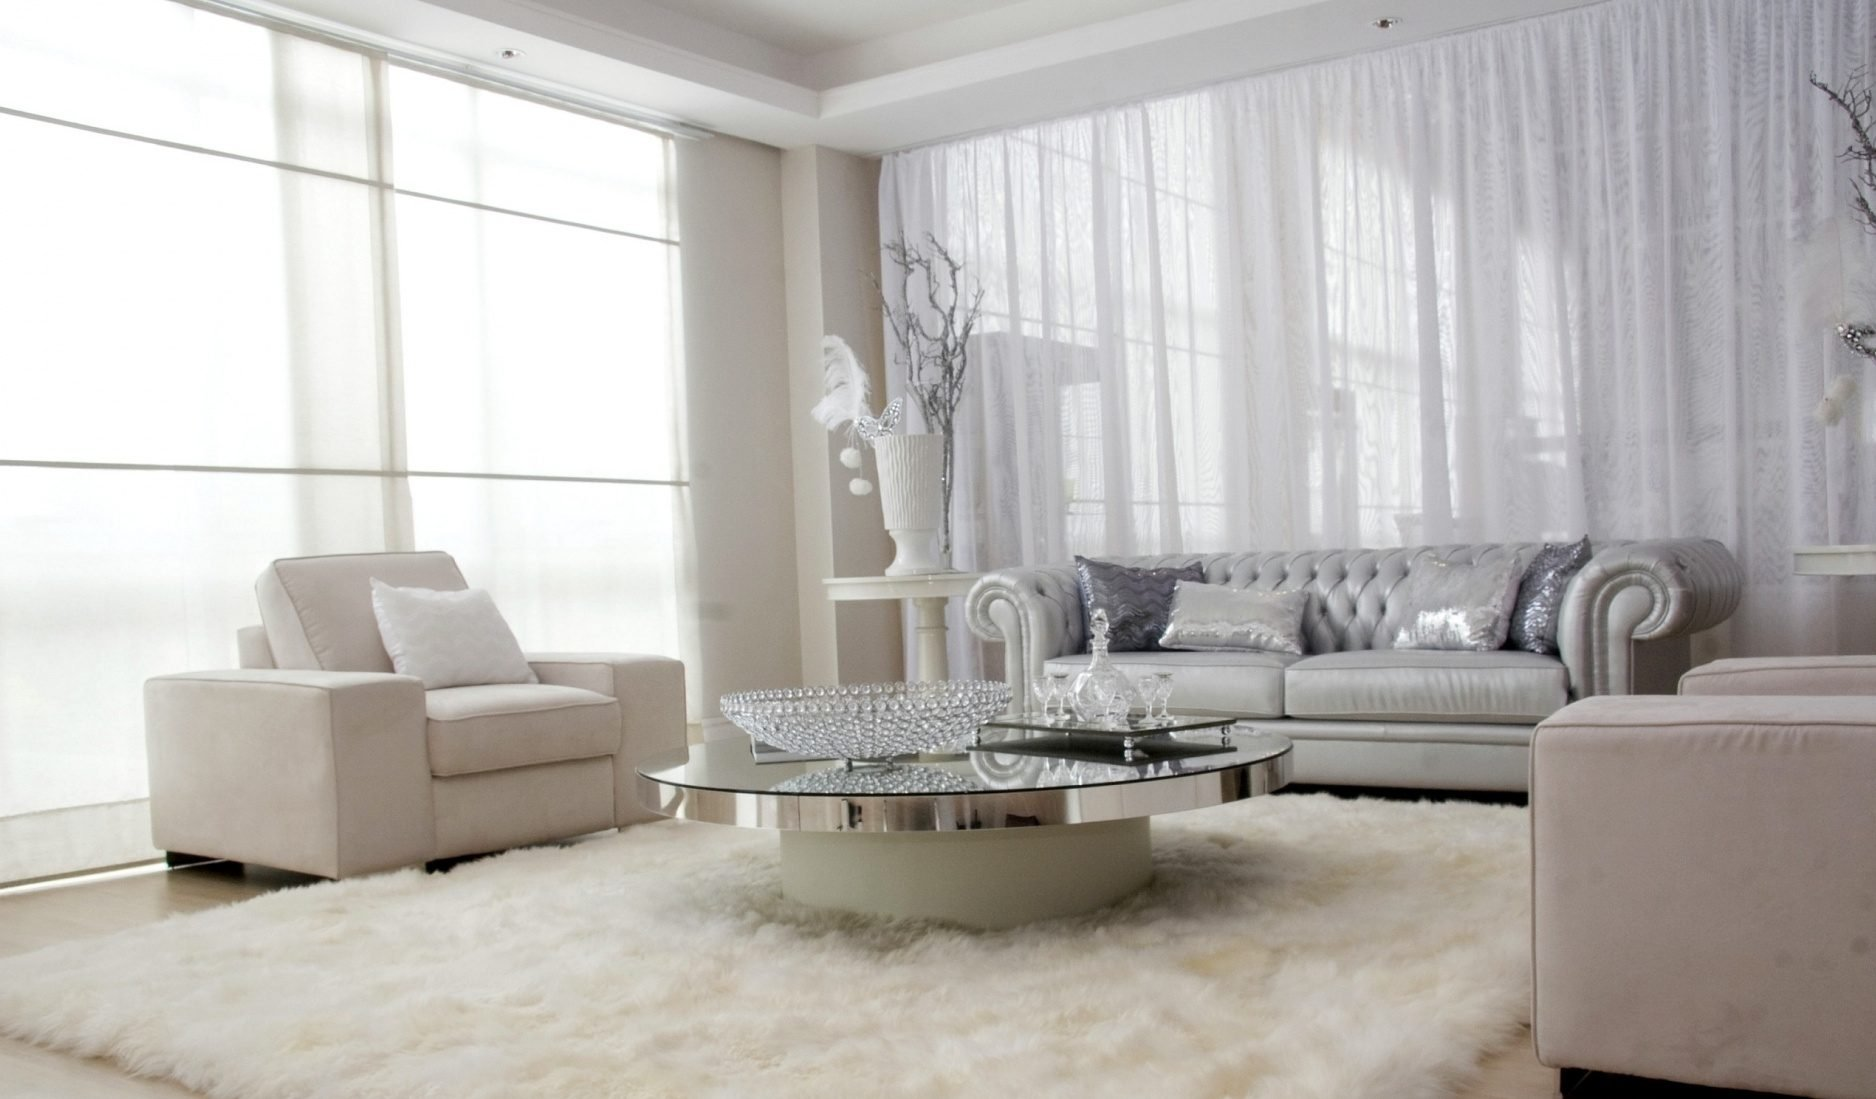 Fluffy floor living room design with white walls and creamy furniture